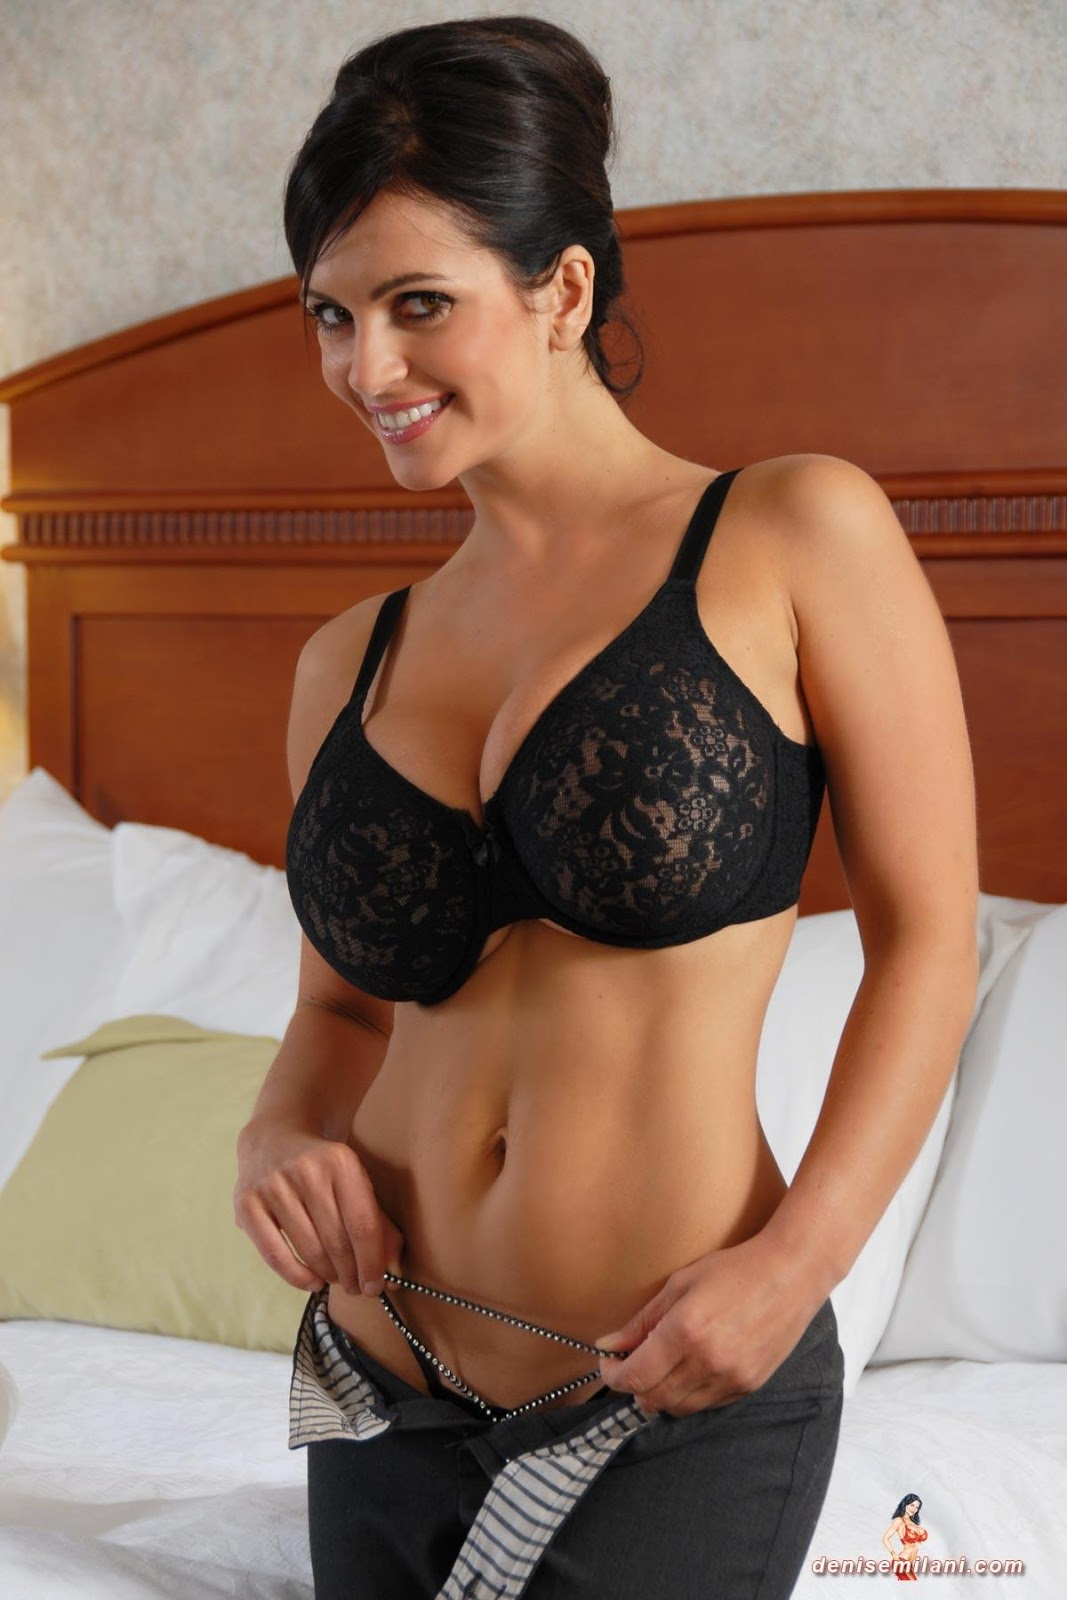 Naked Pictures Of Denise Milani